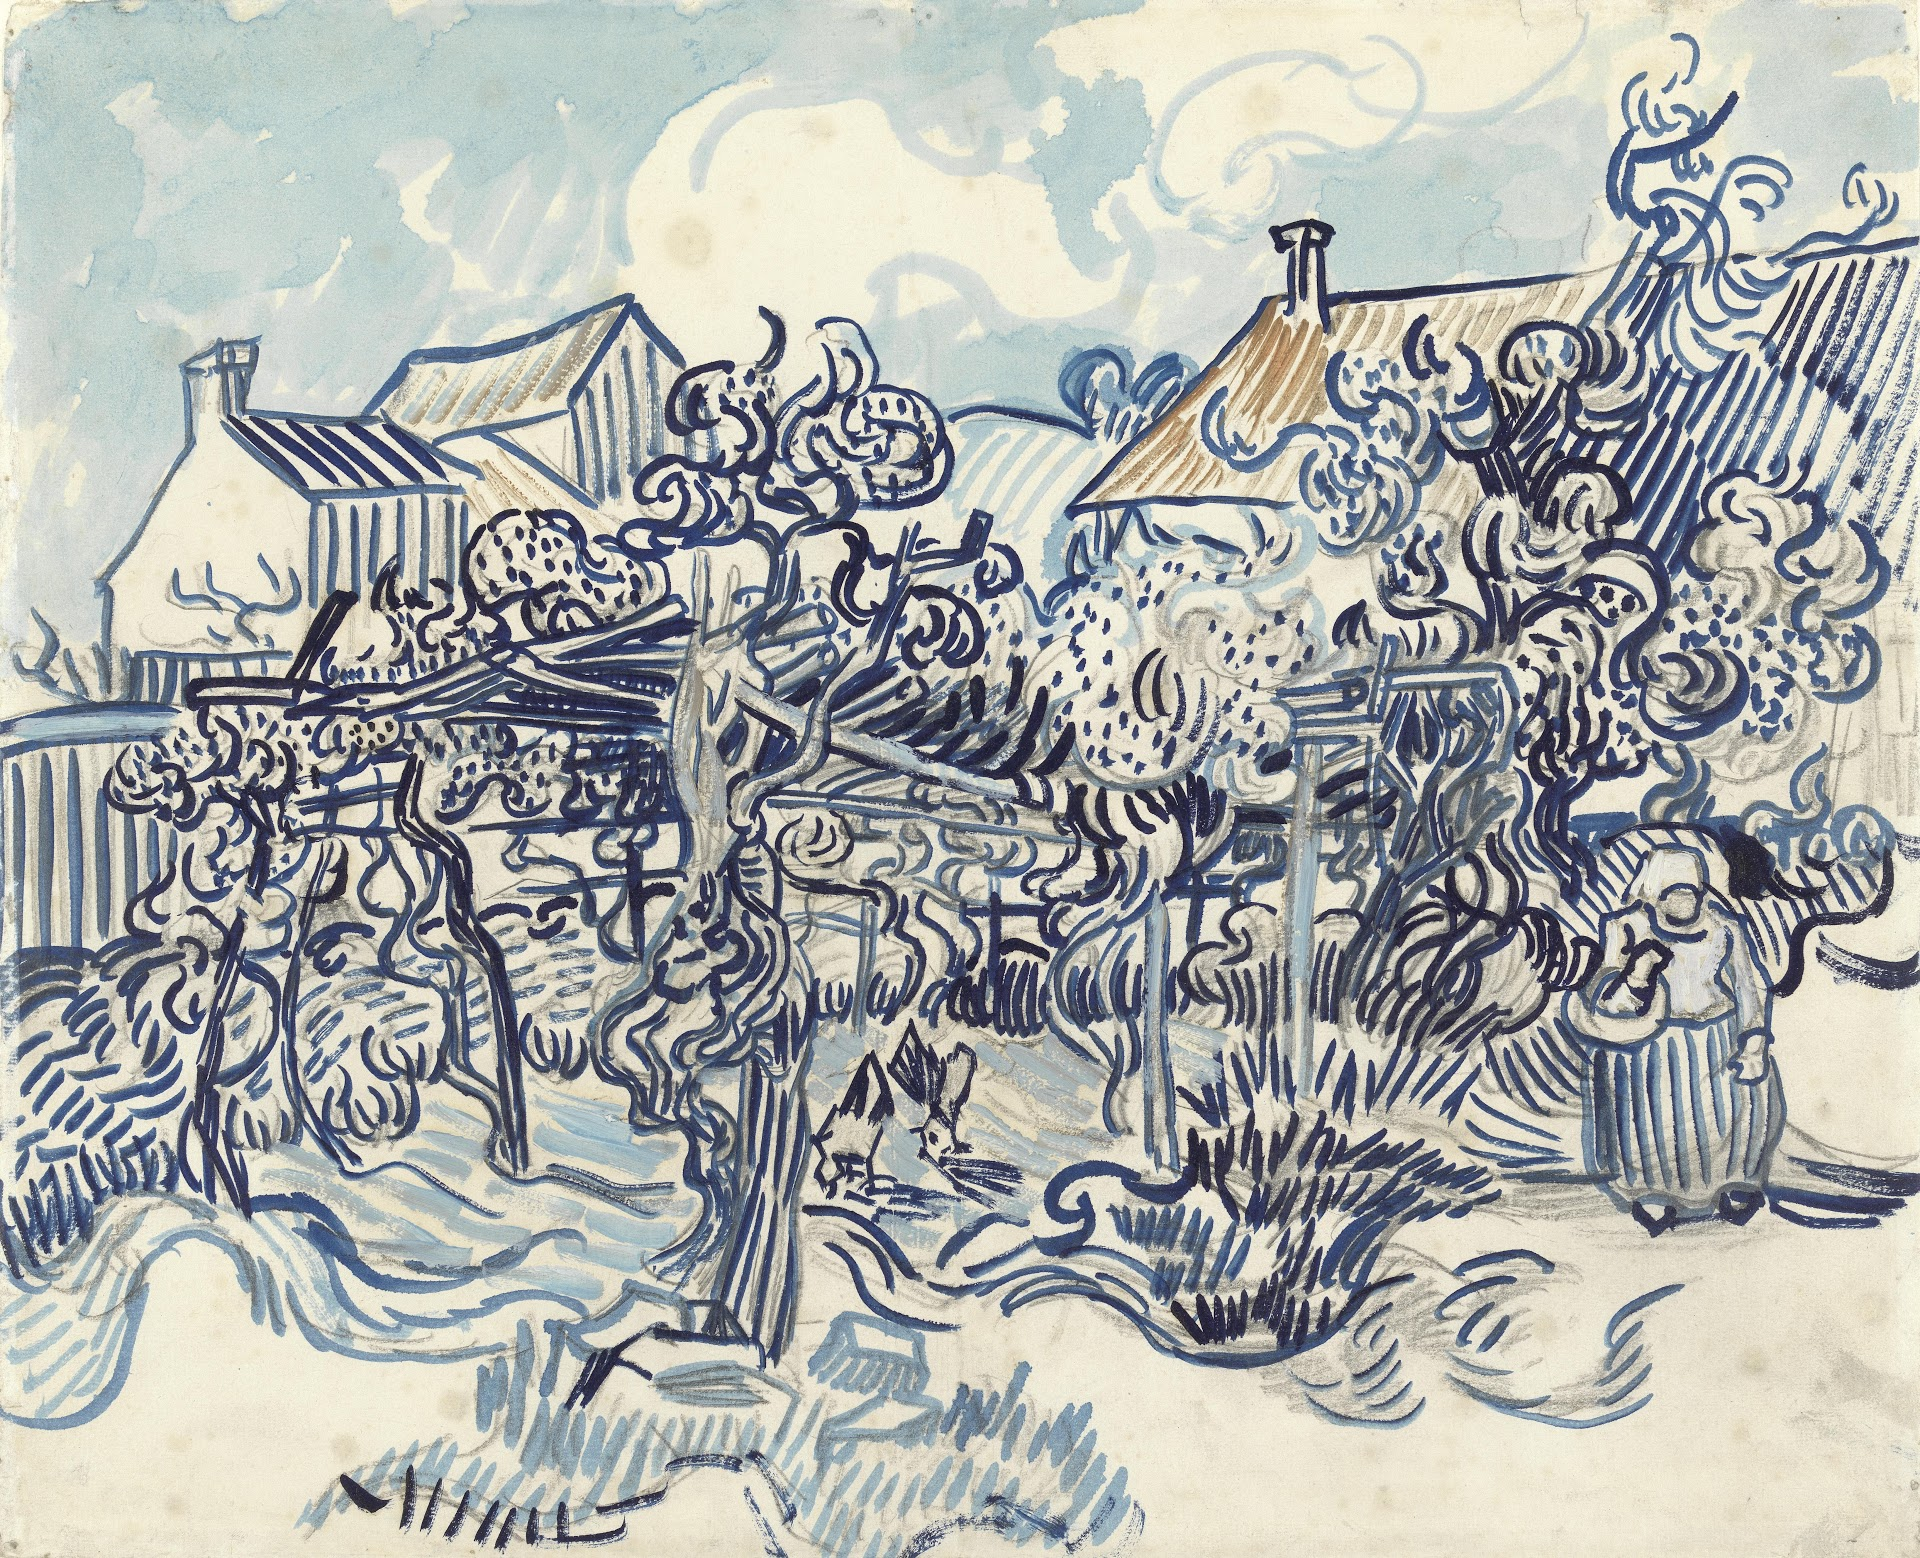 1 000 Paintings Drawings By Vincent Van Gogh Available To Download For Free Artfido